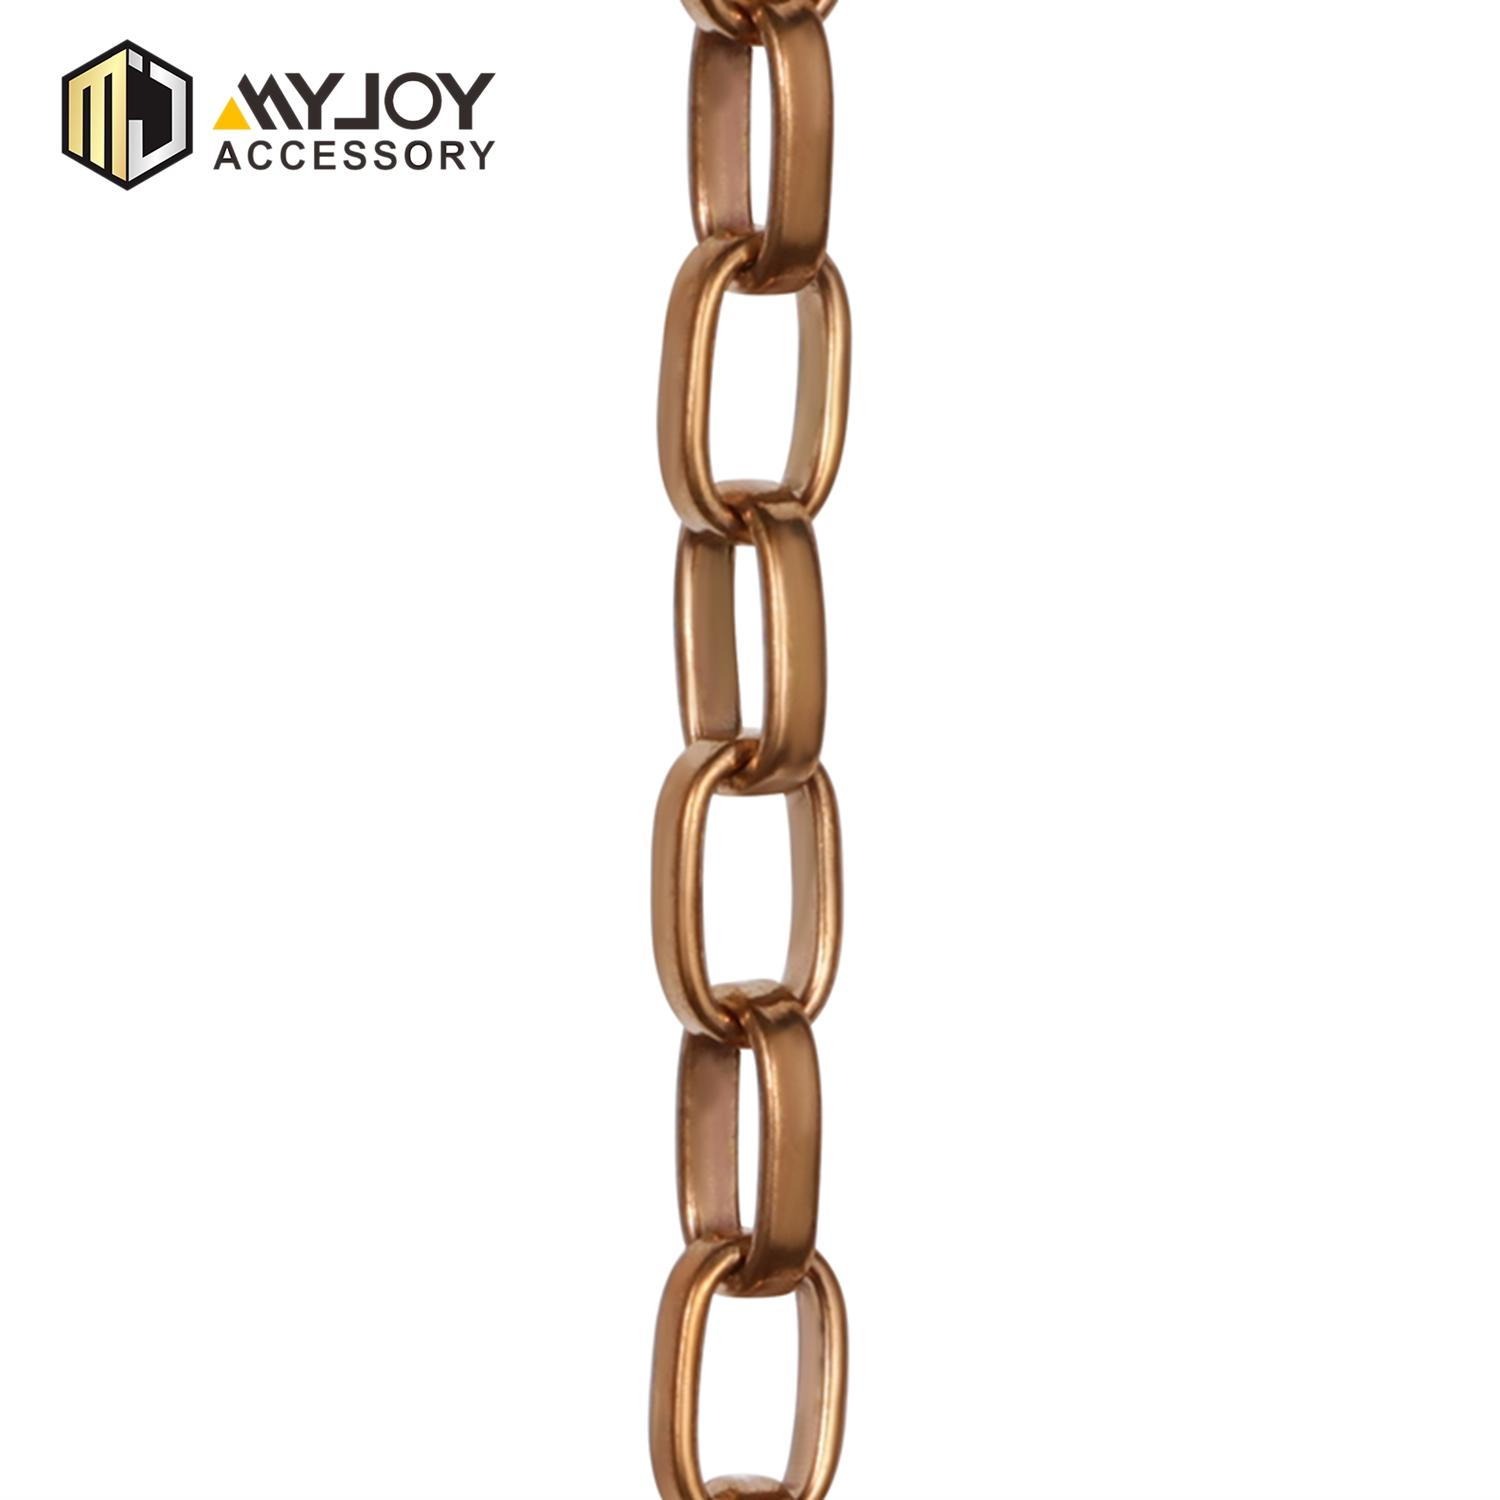 MYJOY cm handbag chain strap for business for purses-1